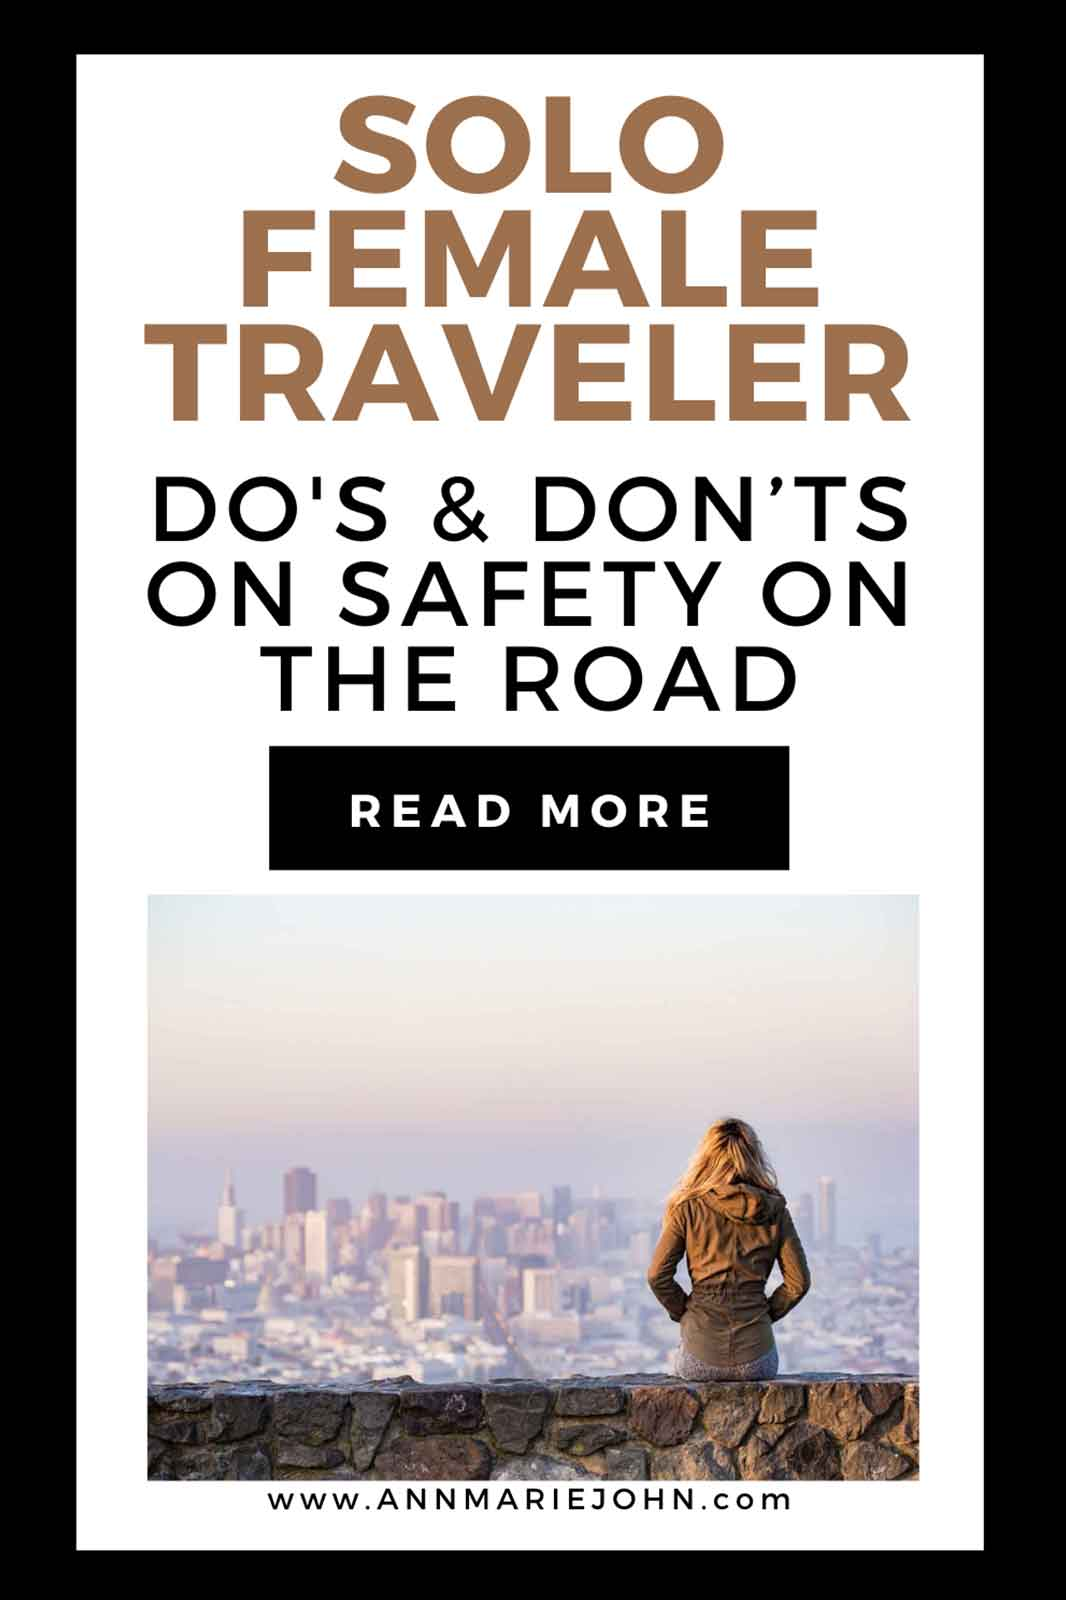 Solo Female Travelers: Dos and Don'ts on Safety on the Road